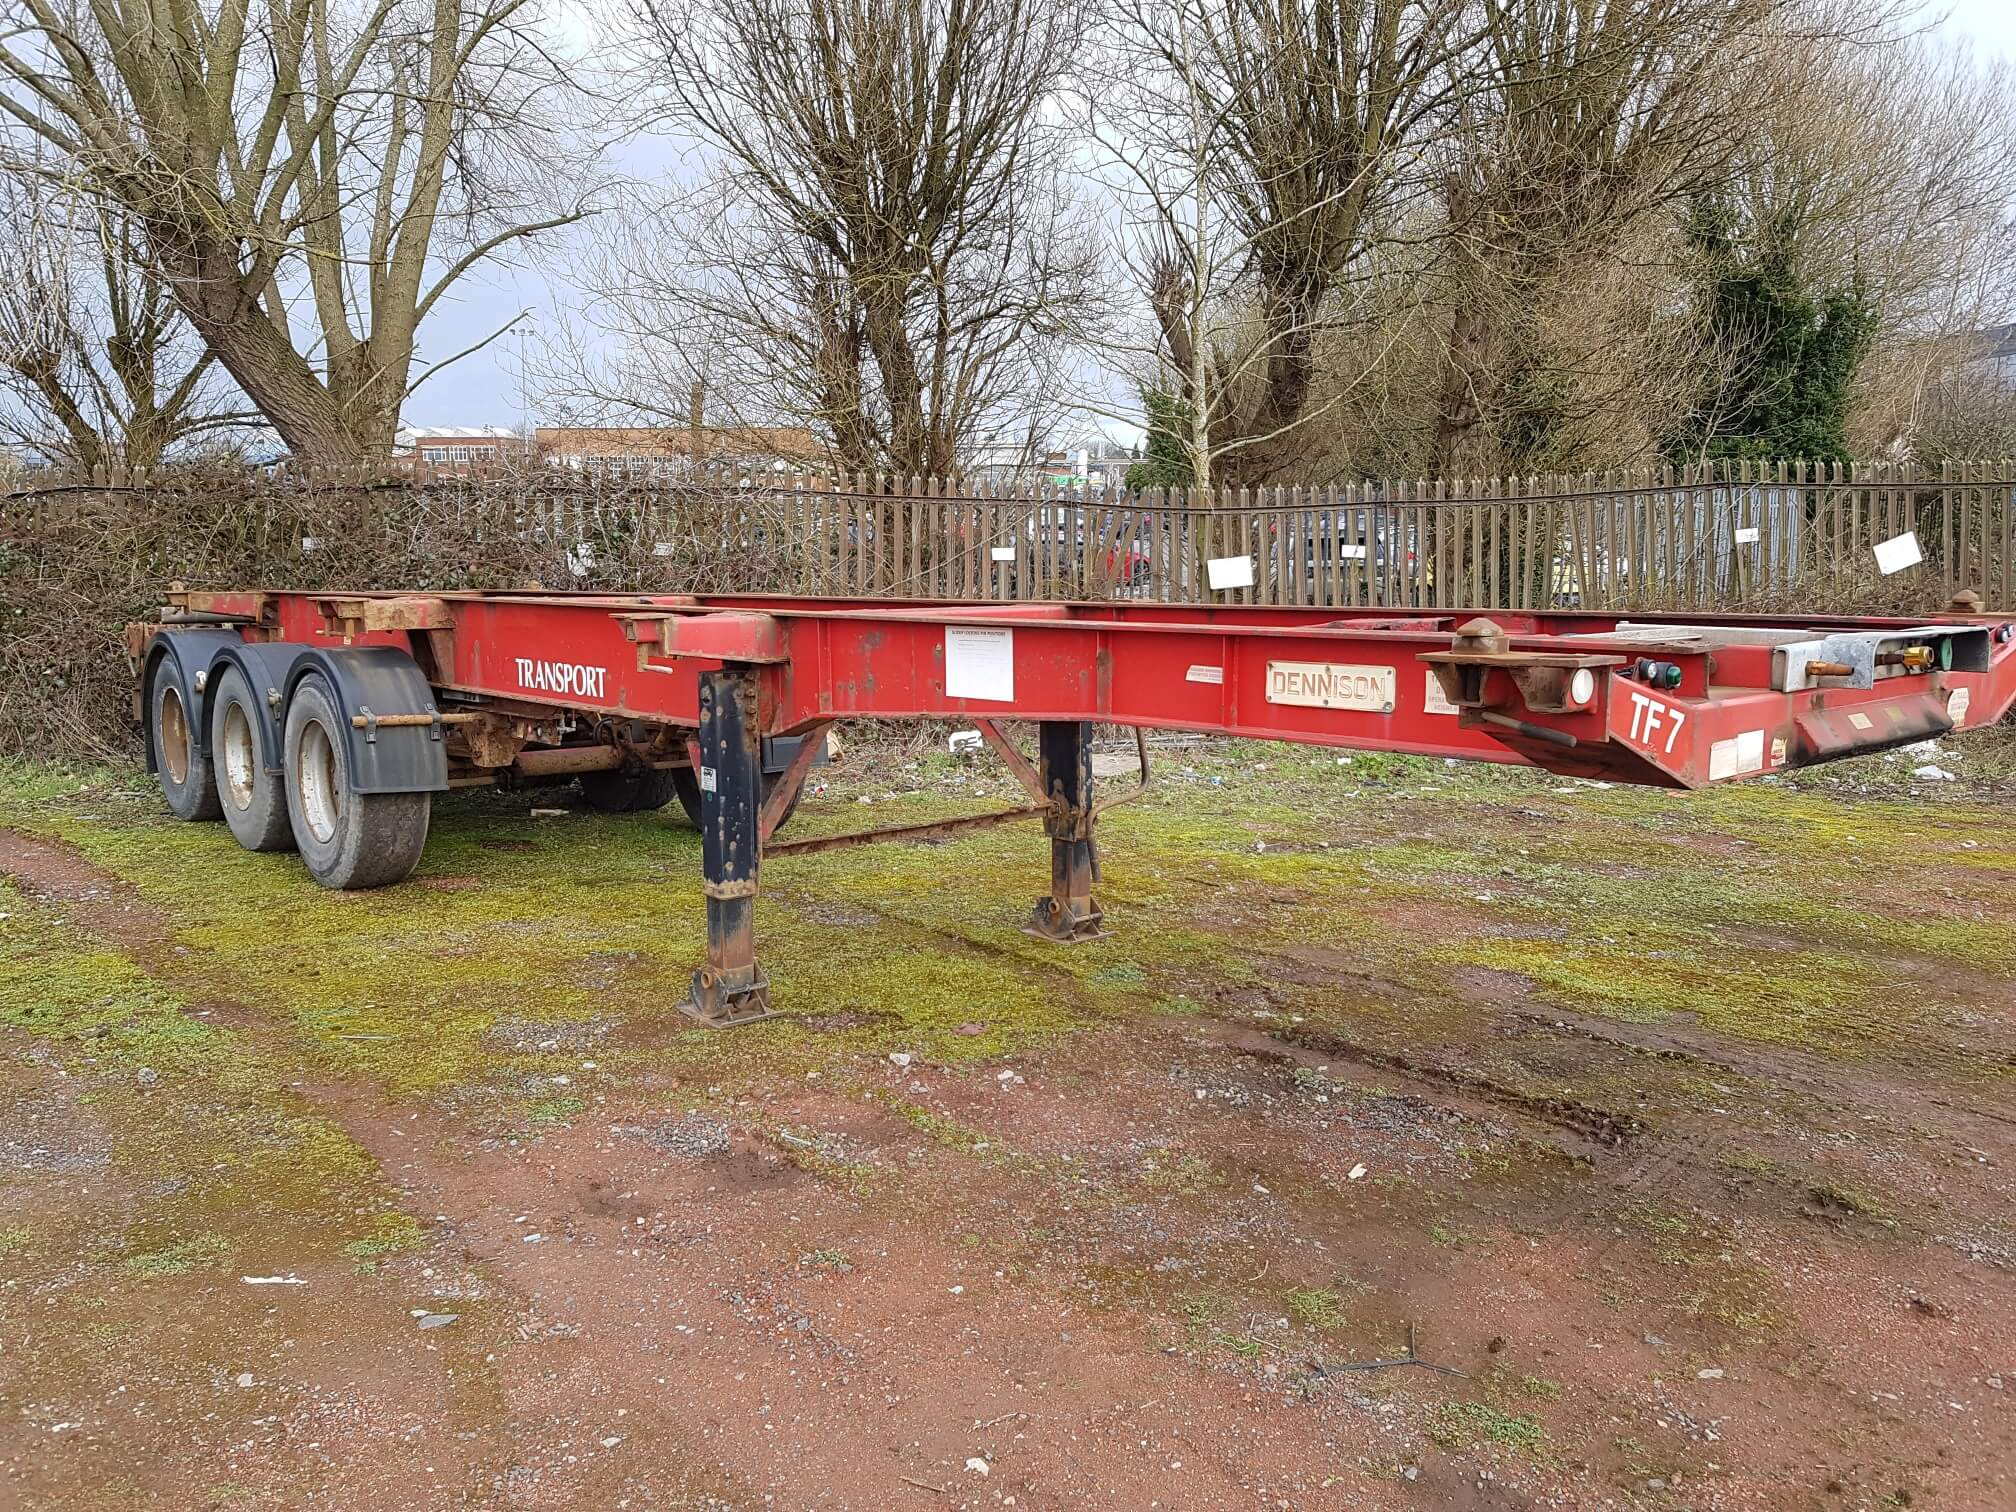 2002 Dennison 12 Lock Sliding Skeletal. ROR drum brakes, raise lower valve facility, MOT expired. £1500 + VAT to take away as seen.